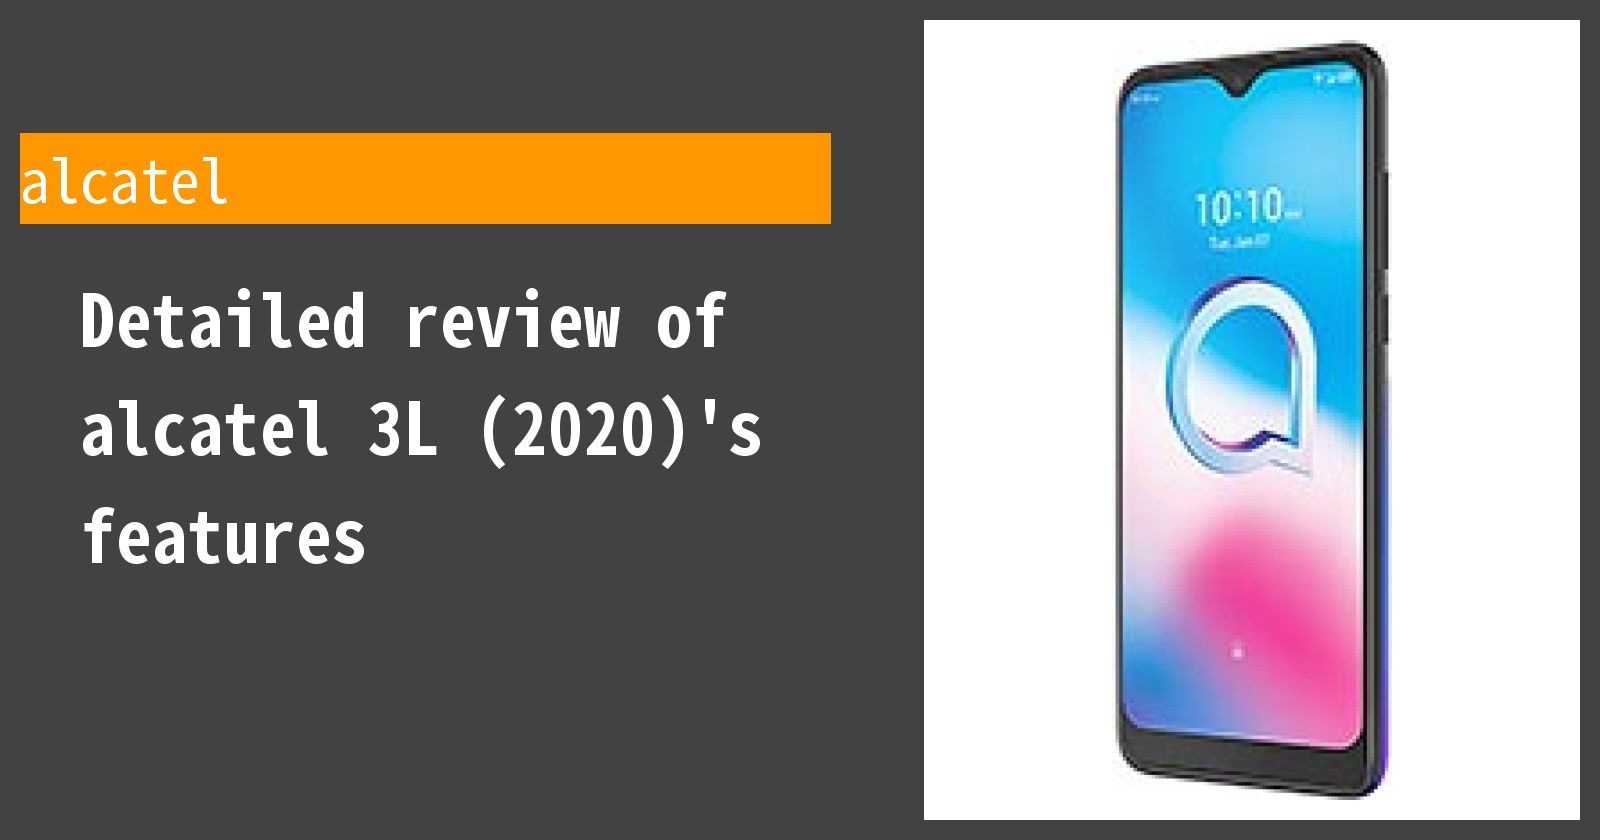 Detailed review of alcatel 3L (2020)'s features